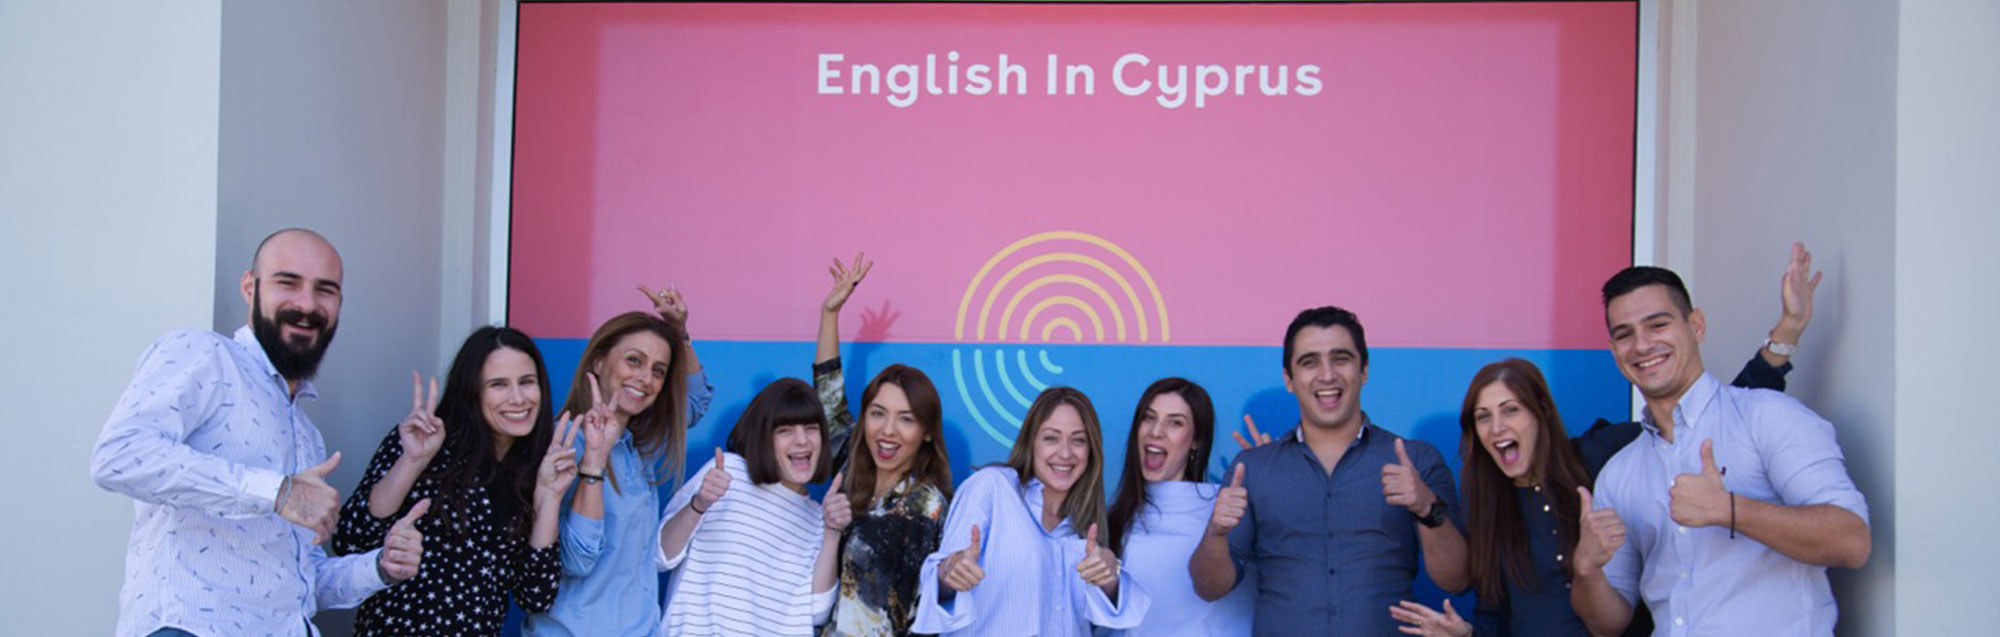 Experiencias y evaluaciones de English in Cyprus